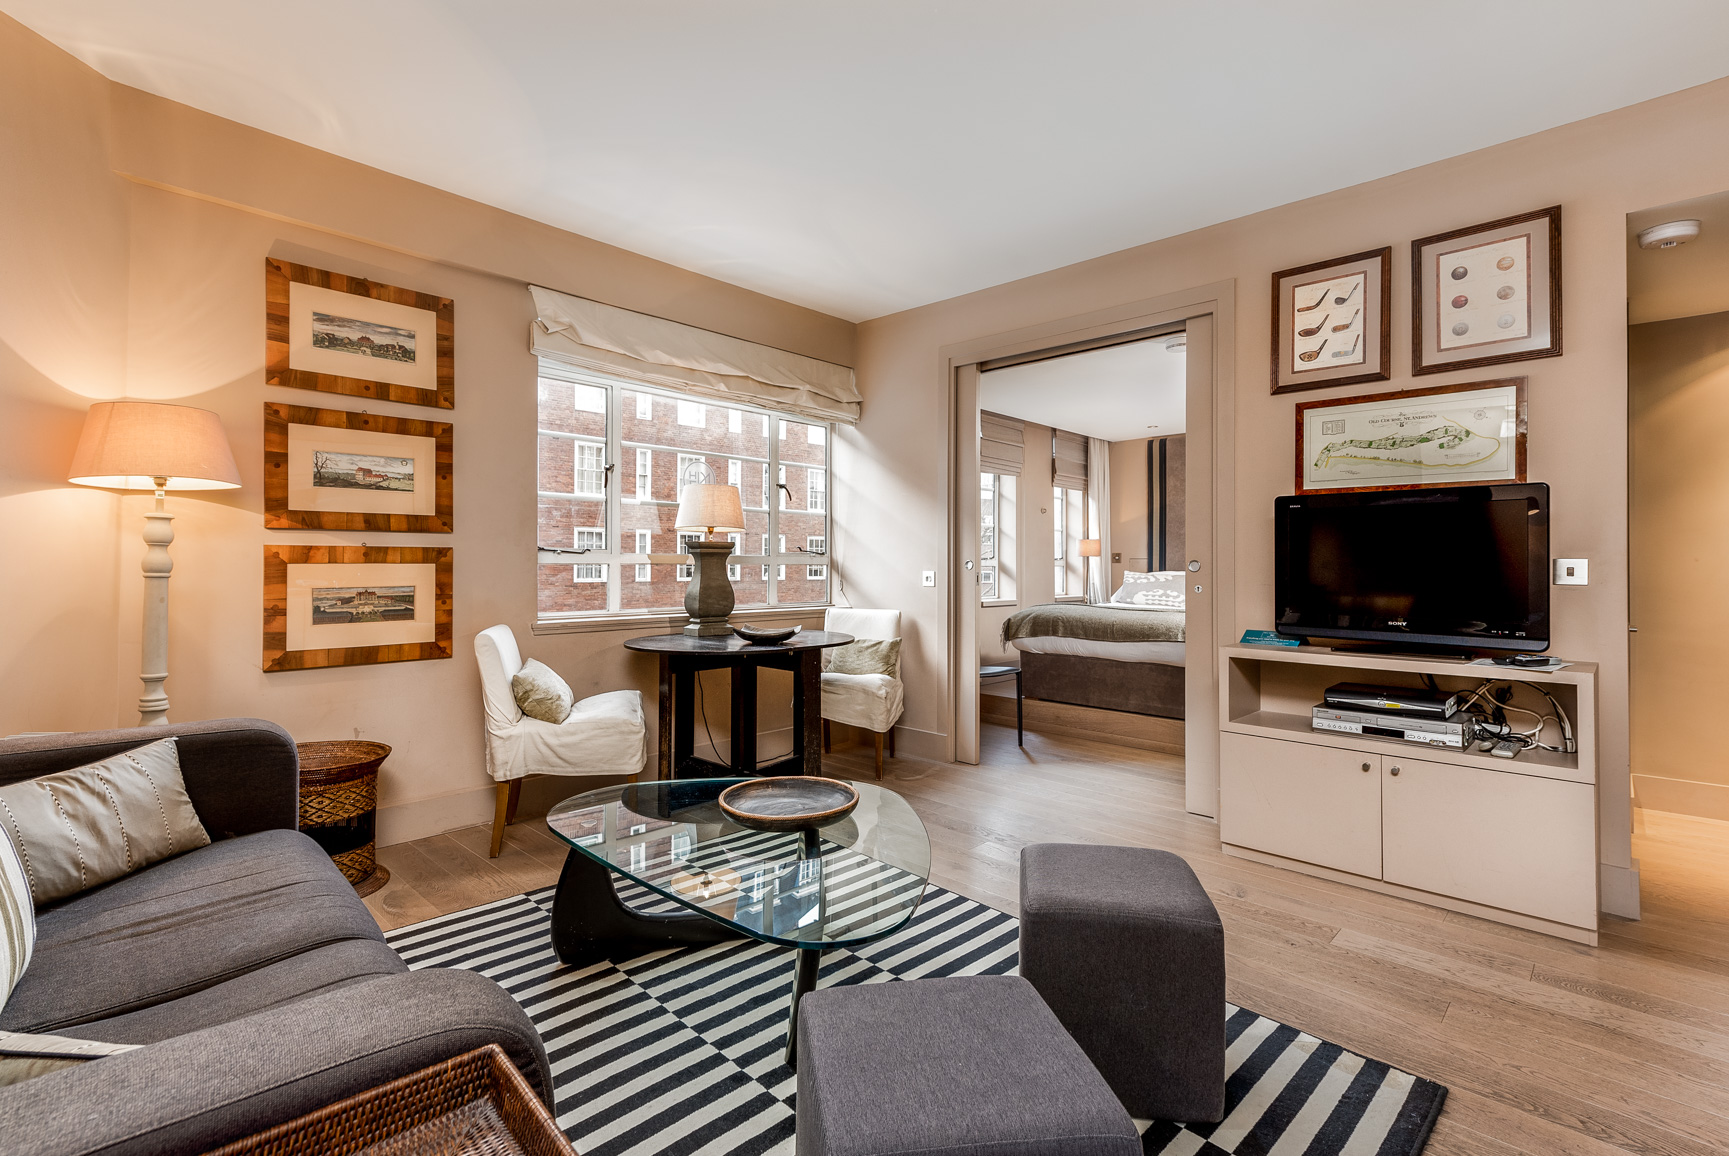 Living Room at Nell Gwynn House Accommodation, Chelsea, London - Citybase Apartments